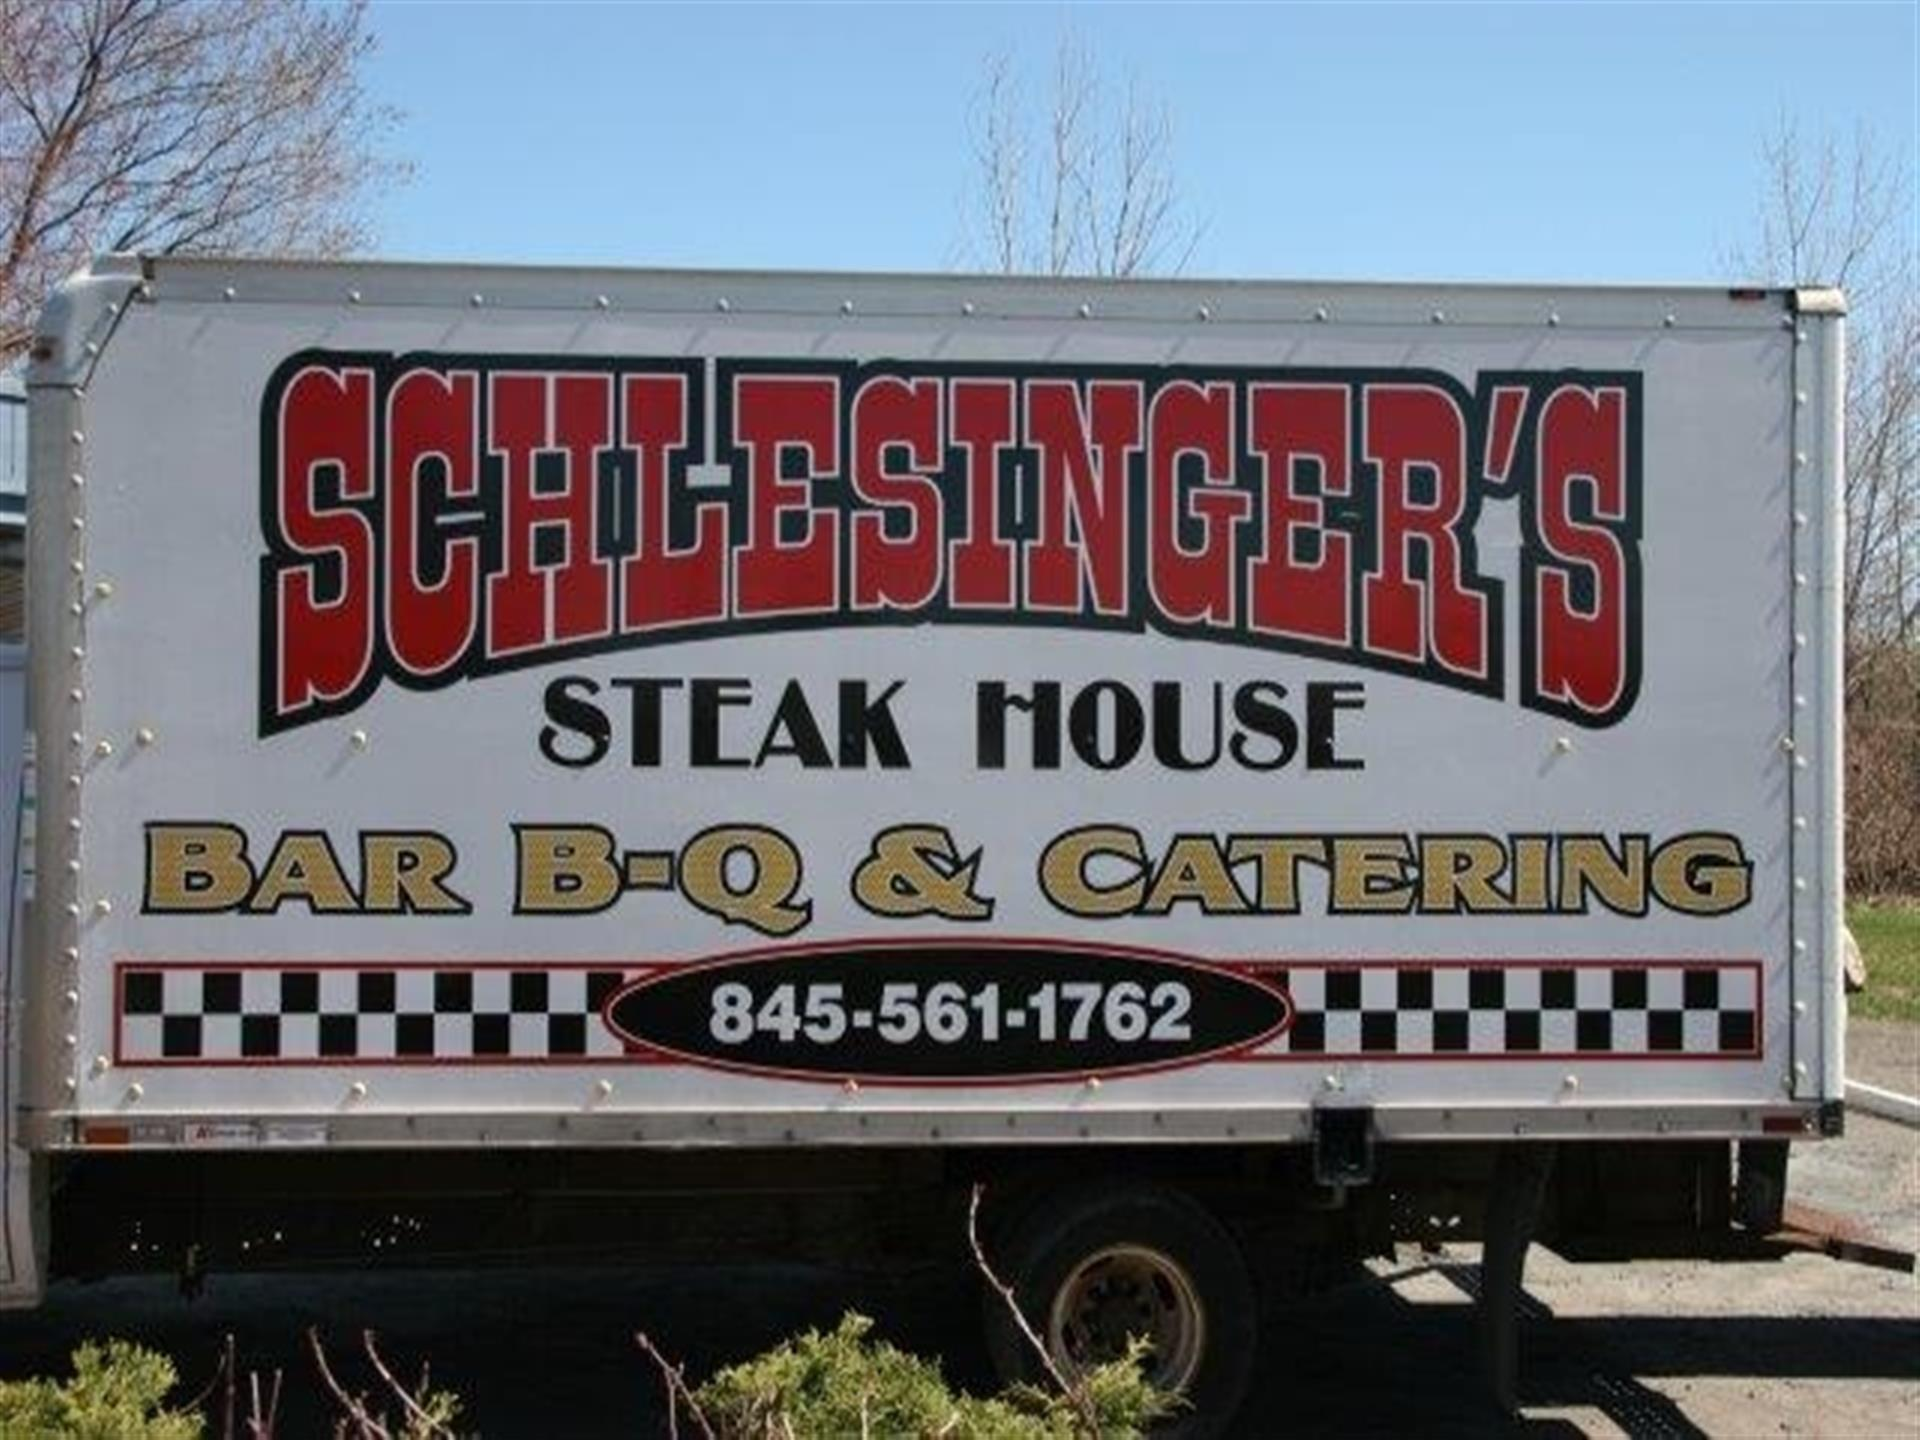 Schlesingers Steak House Barbecue and Catering 845-561-1762